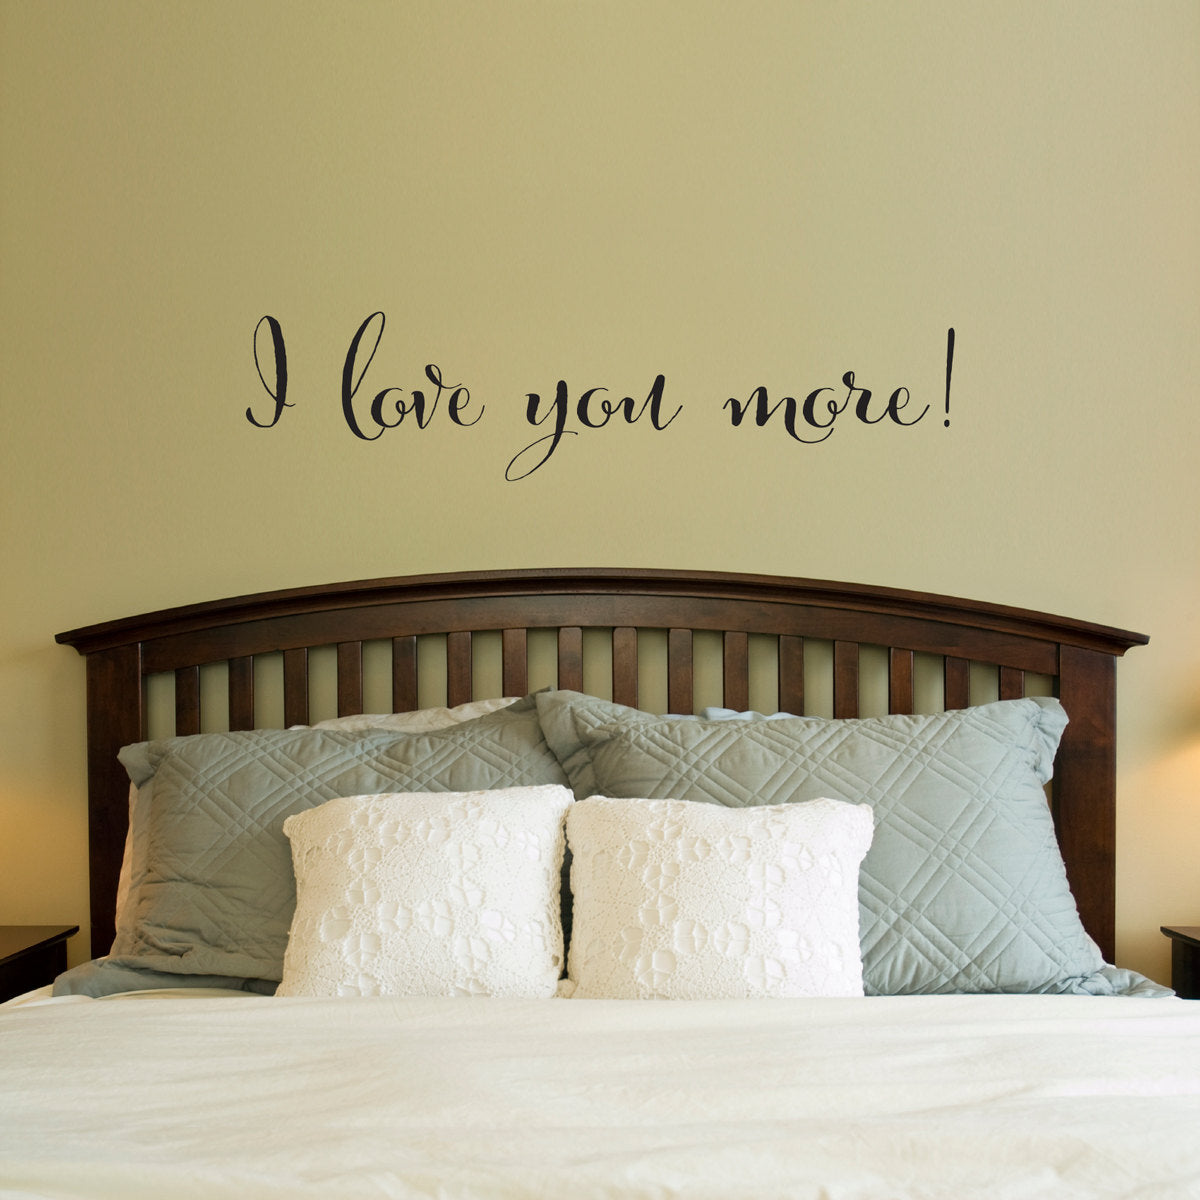 Love Wall Decal - I love you more Decal - Bedroom Wall Art - Love ...